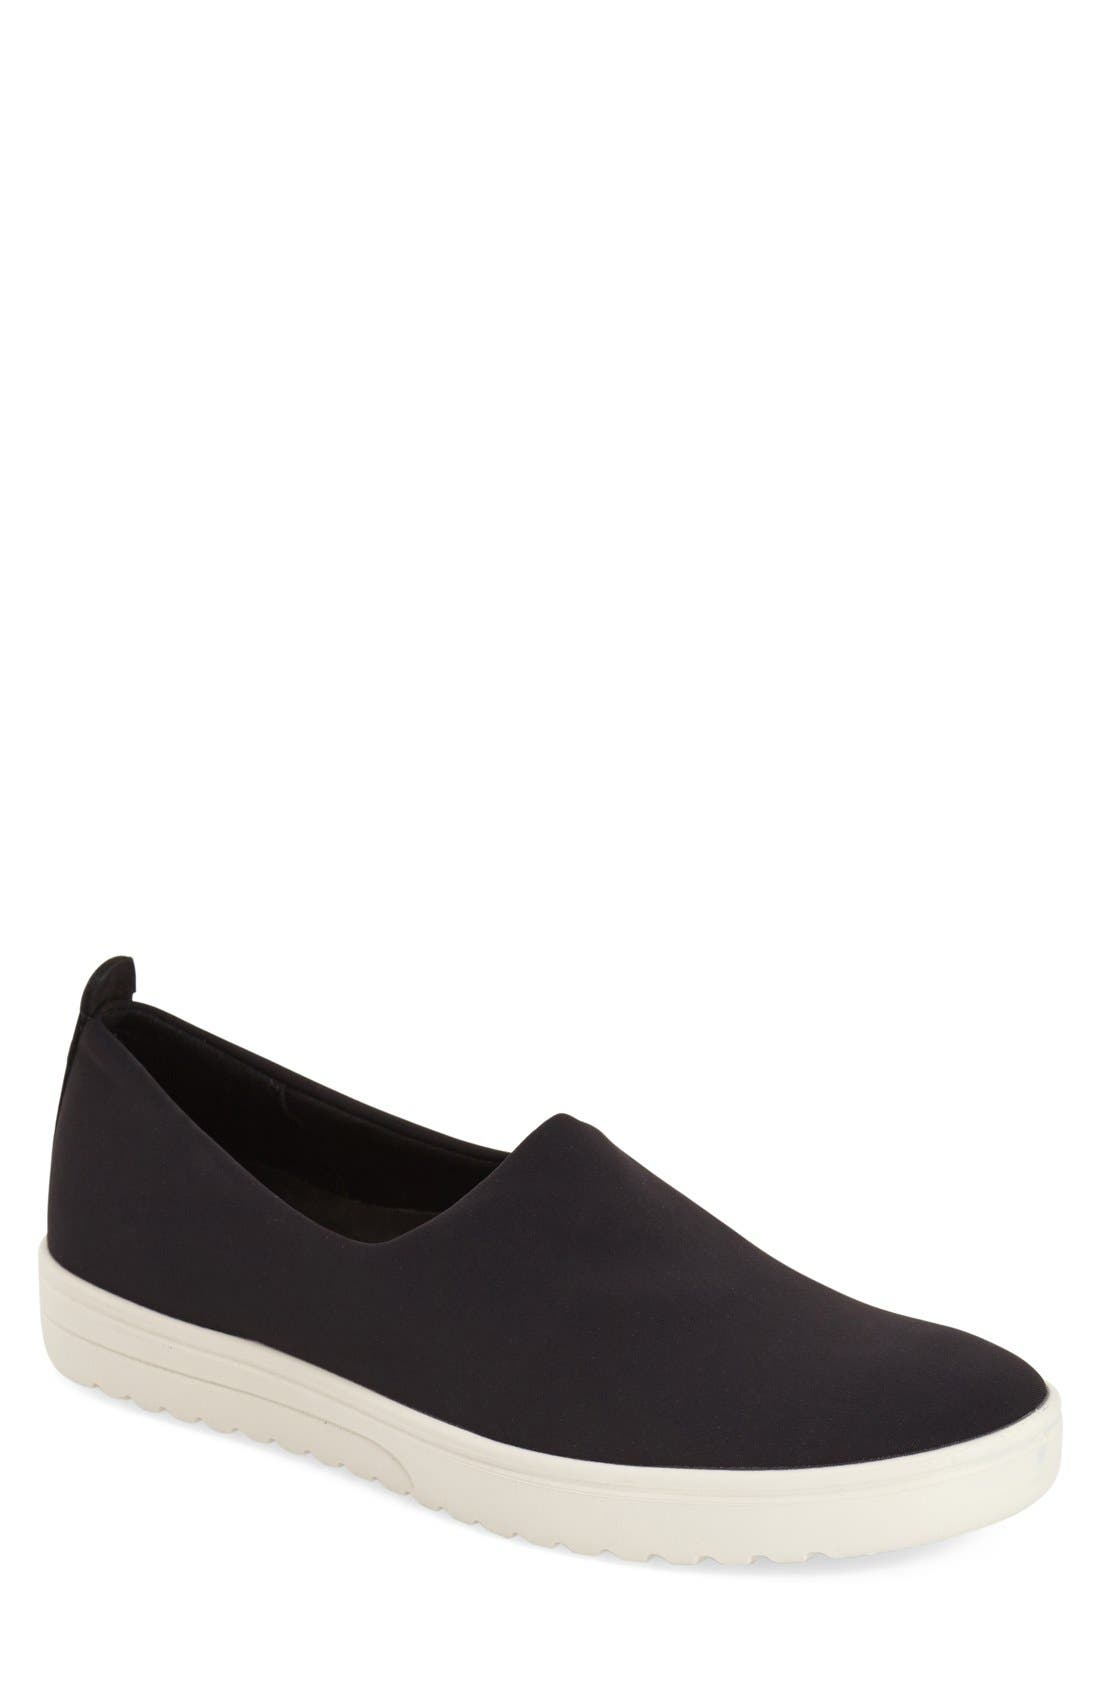 'Fara' Slip-On Sneaker,                         Main,                         color,